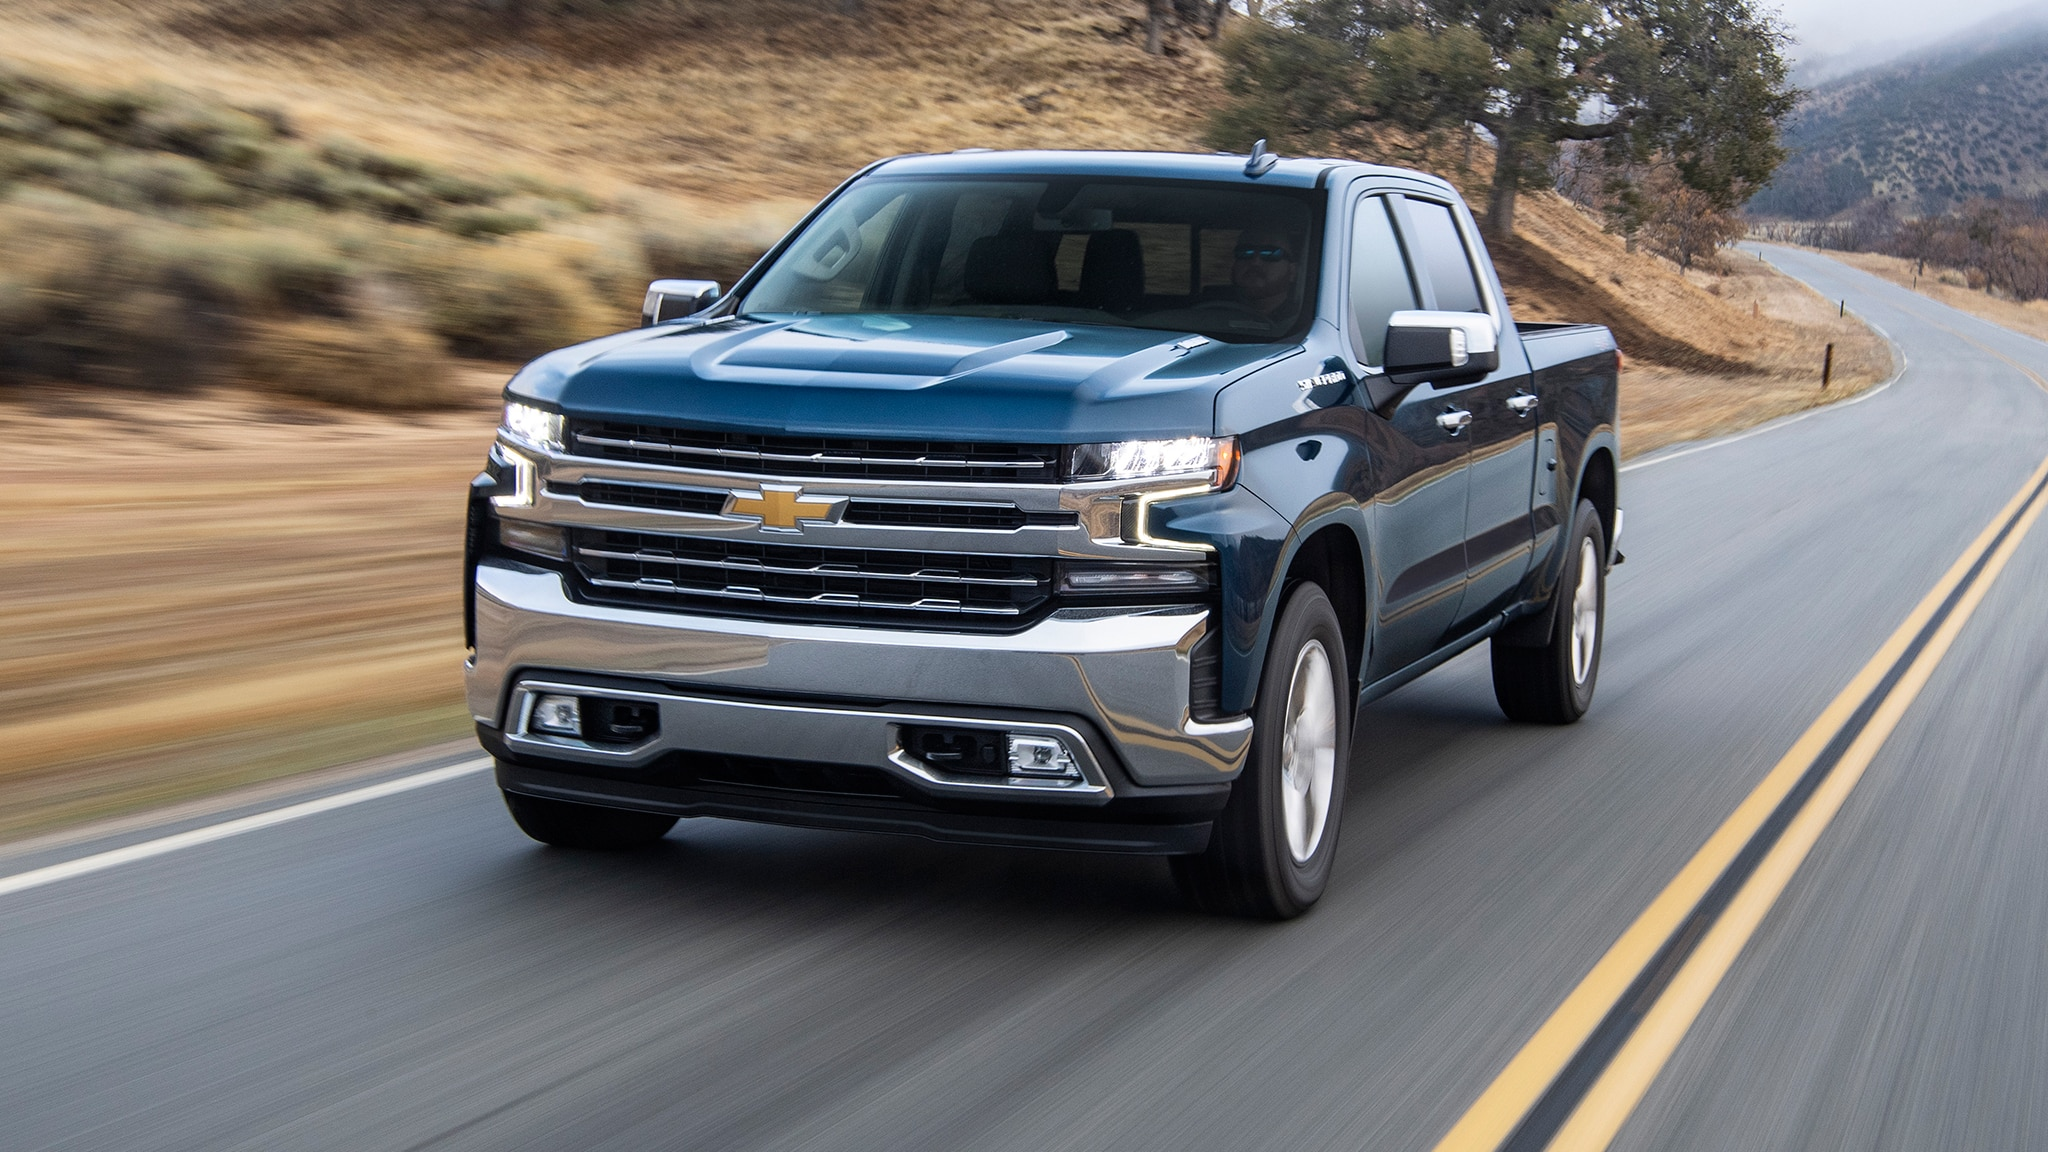 the 2020 chevrolet silverado diesel gets big highway mpg